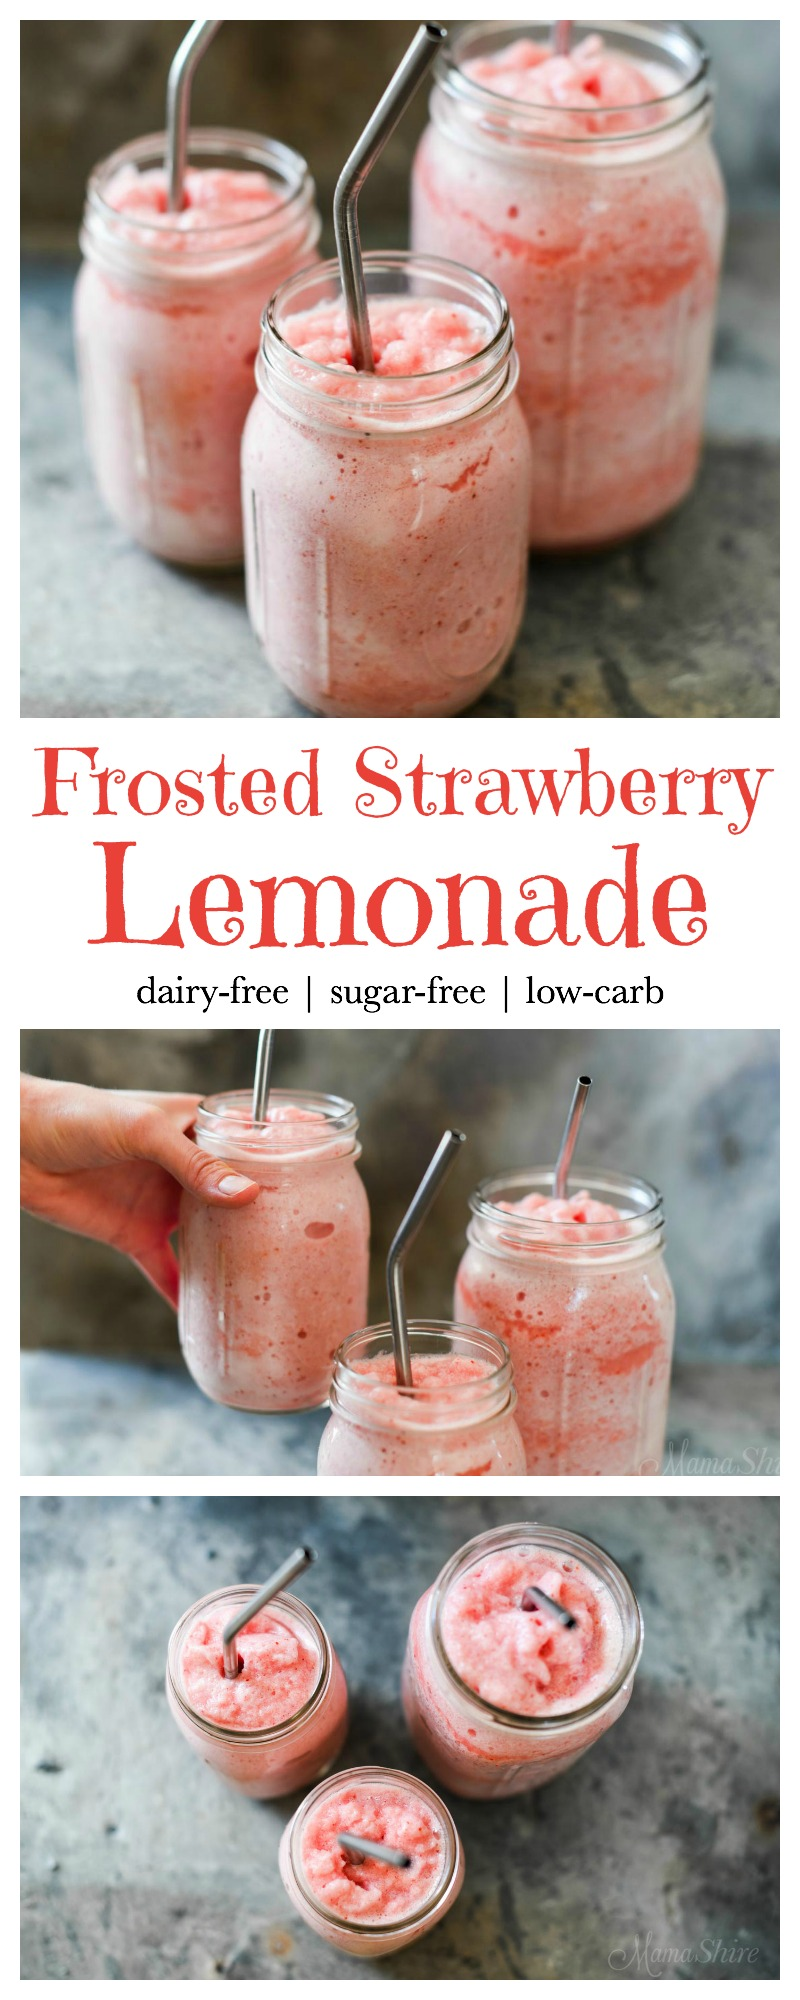 Frosted Strawberry Lemonade - Dairy-free, sugar-free, low-carb